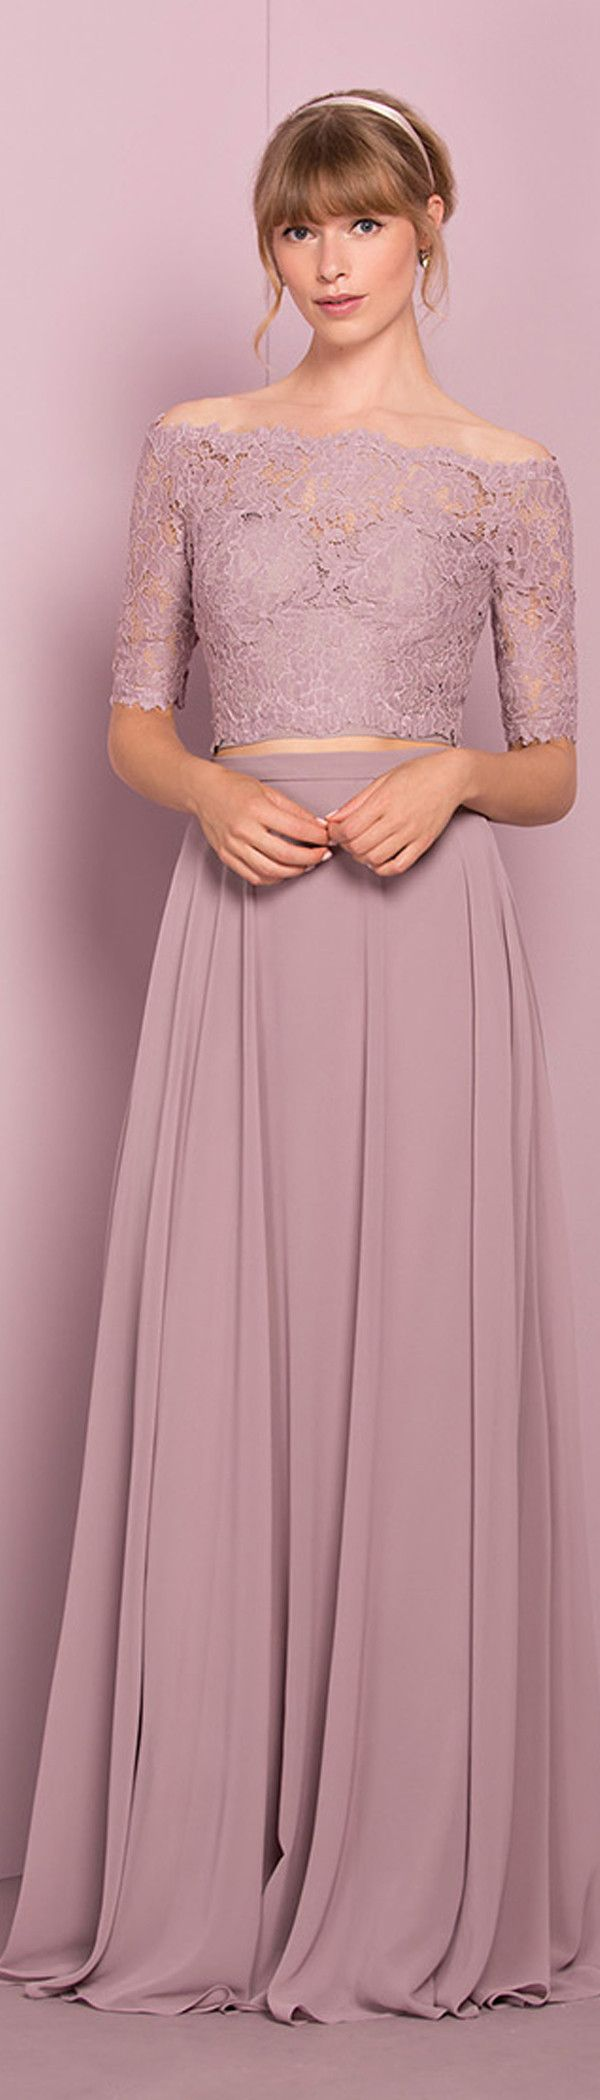 Marvelous Lace & Chiffon Off-the-shoulder Neckline Two-piece A-line Bridesmaid Dress